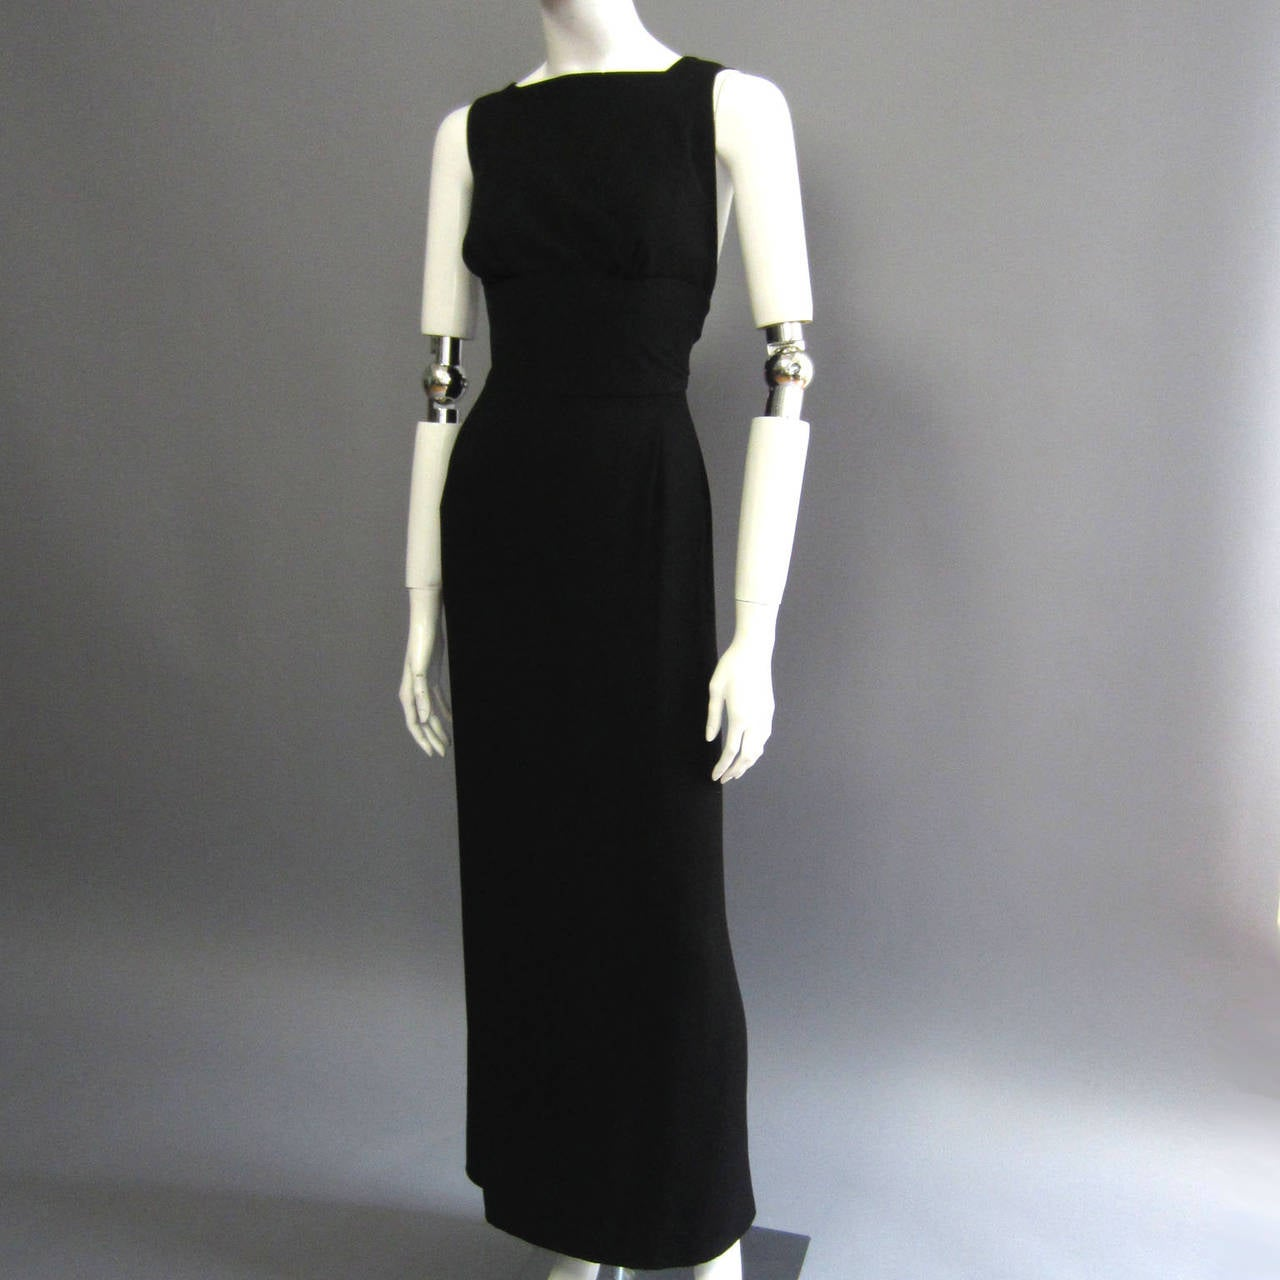 NORMAN NORELL Black Column Evening Gown with Back Tie Detail For Sale 6